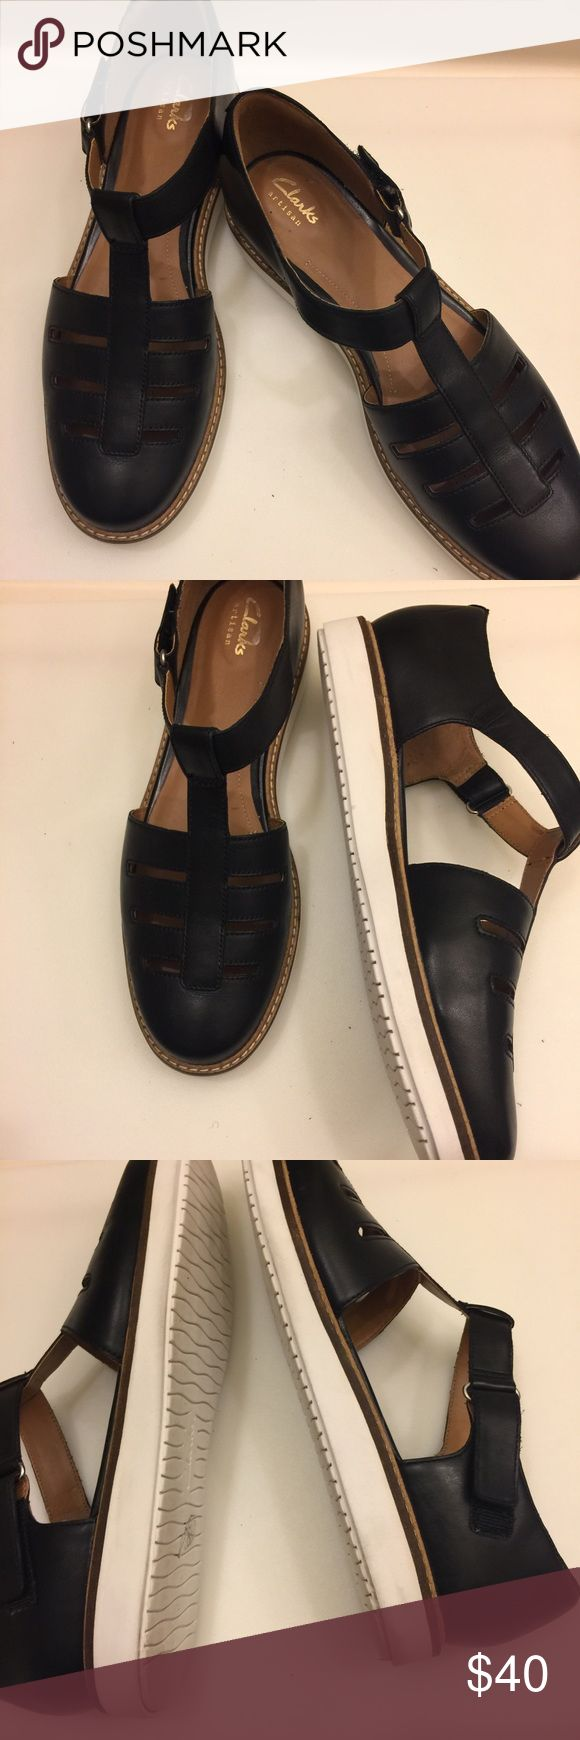 Authentic Clarks Artisan Sandals Authentic Clarks Artisan Sandals in  excellent preowned condition. These sandals was